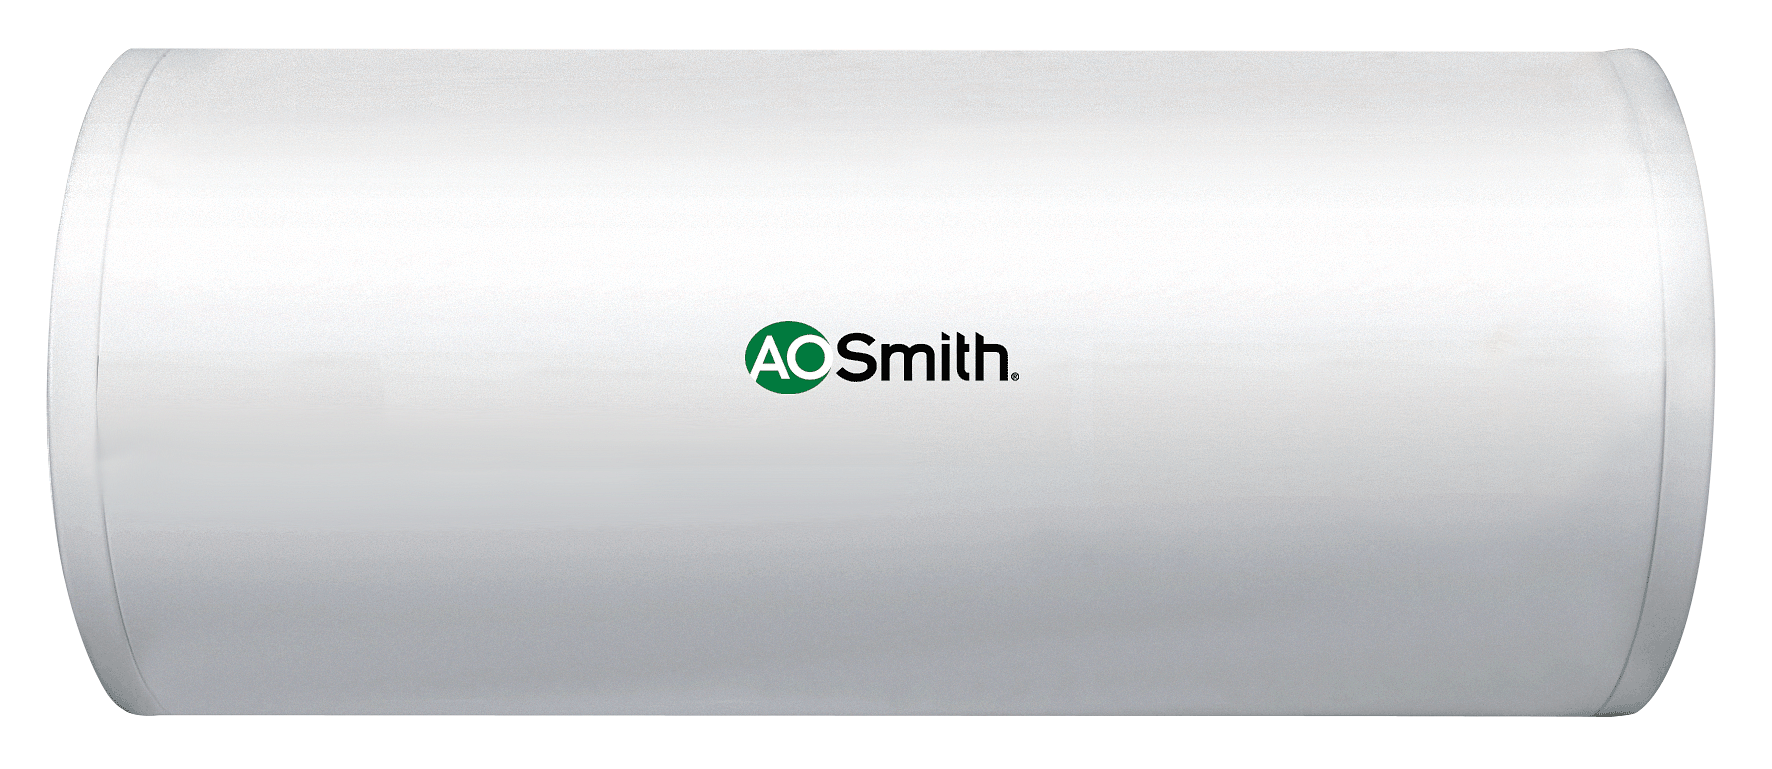 Guide To Water Heaters Essential Information And Considerations Piping Diagram Heater Storage Tank Digital Such As Those By American Brand Ao Smith Are Equipped With Control Panels That Allow You Adjust The Thermostat Save Energy